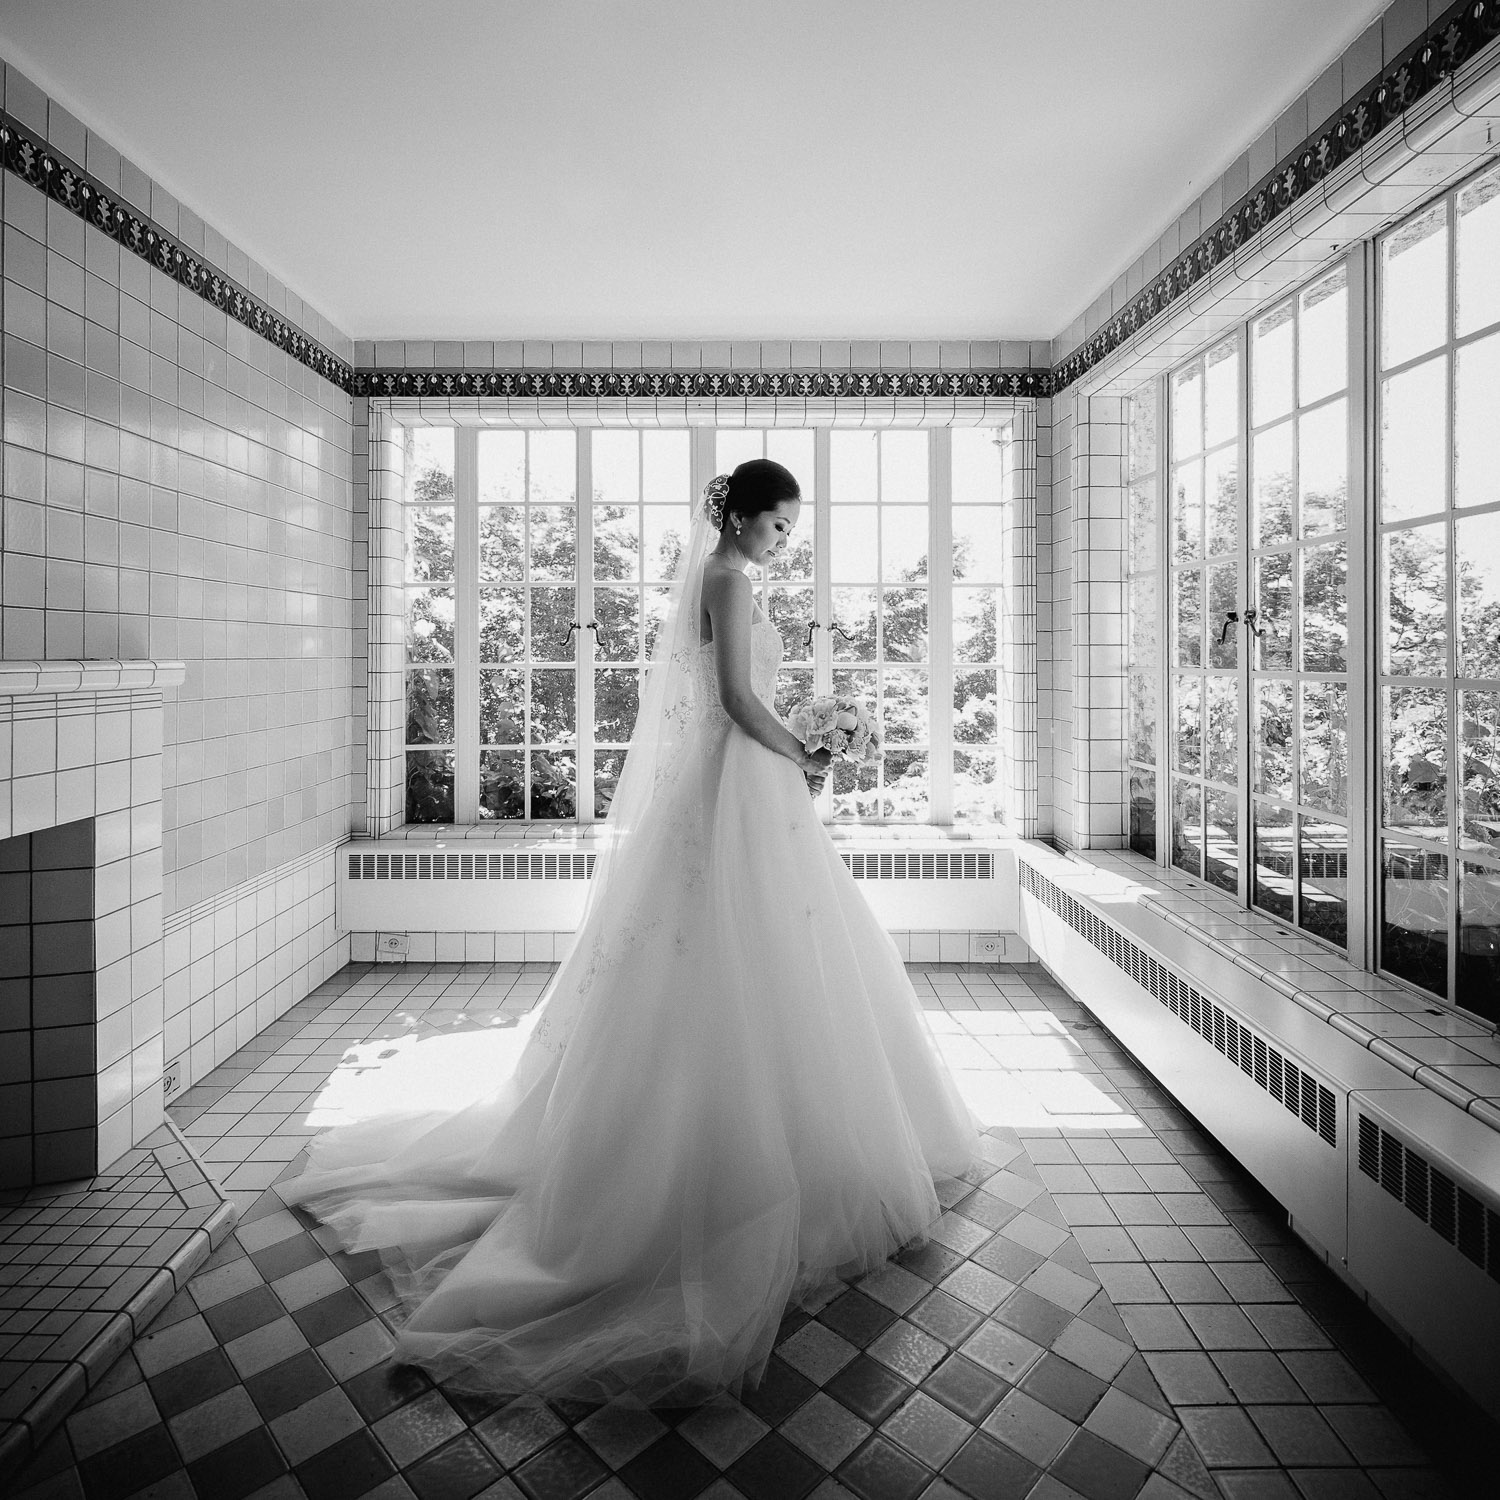 hycroft manor vancouver wedding photography bride portrait in black and white vsco